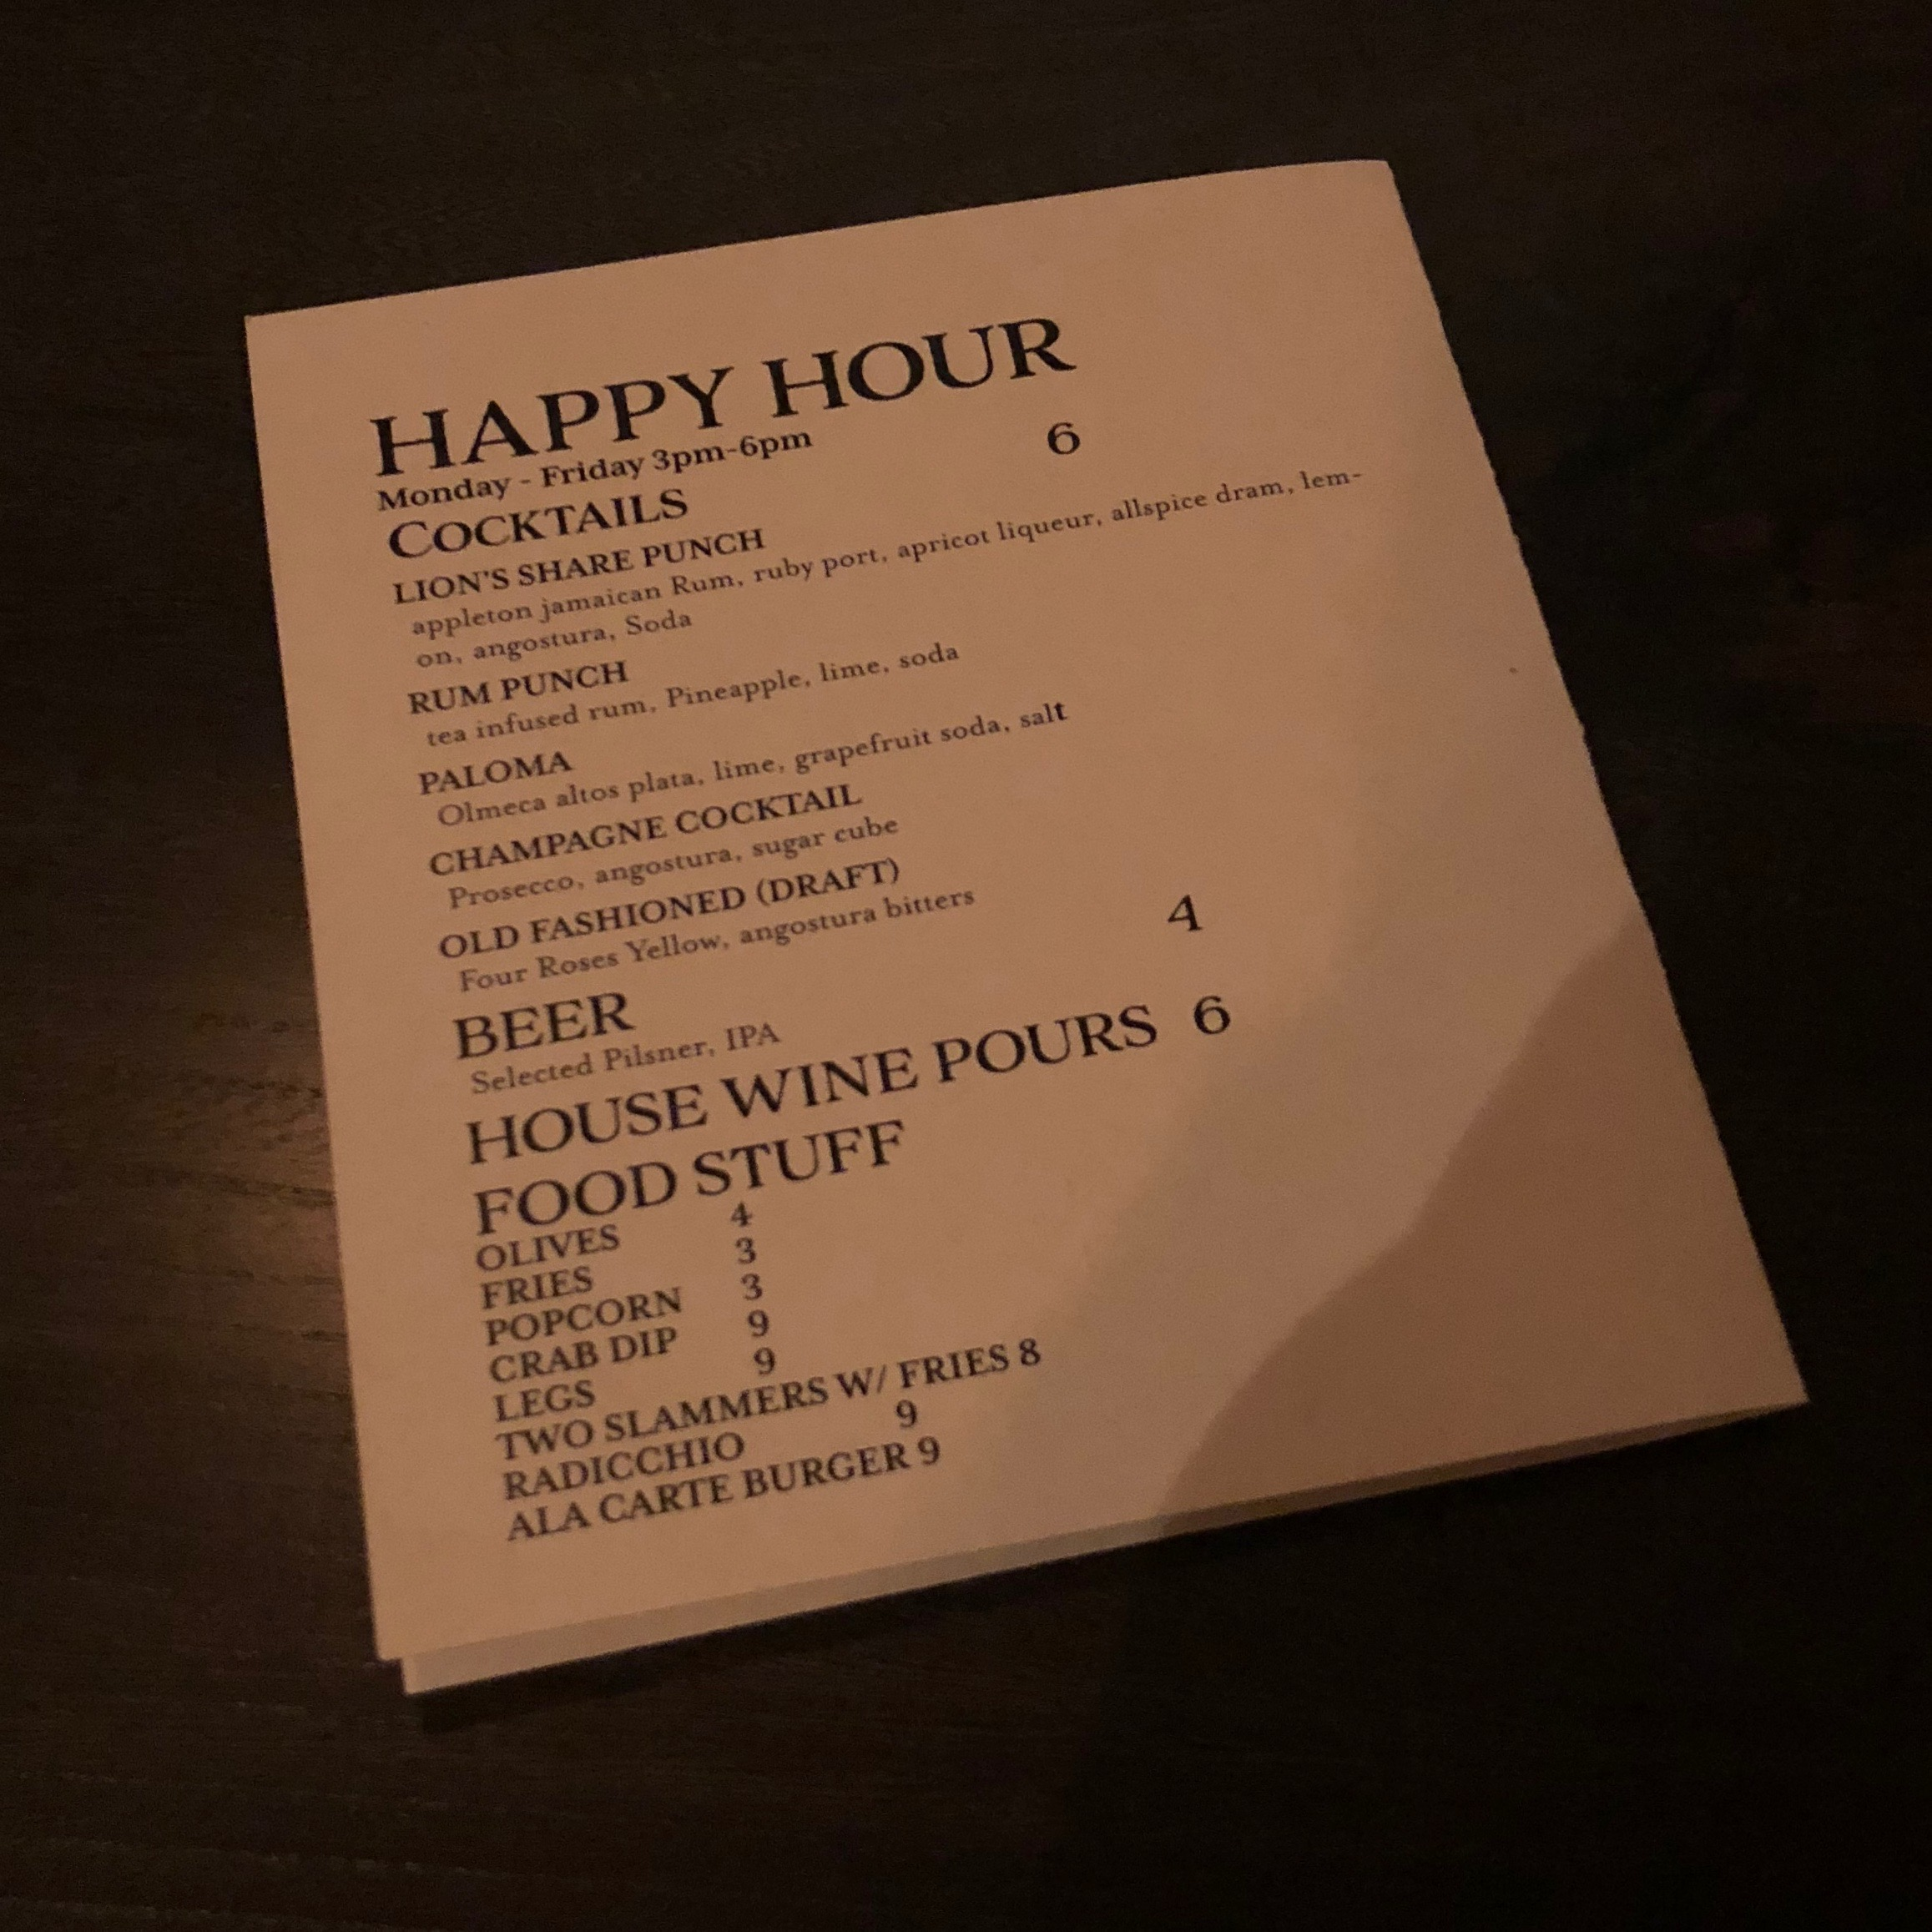 Bantam Tavern happy hour menu.